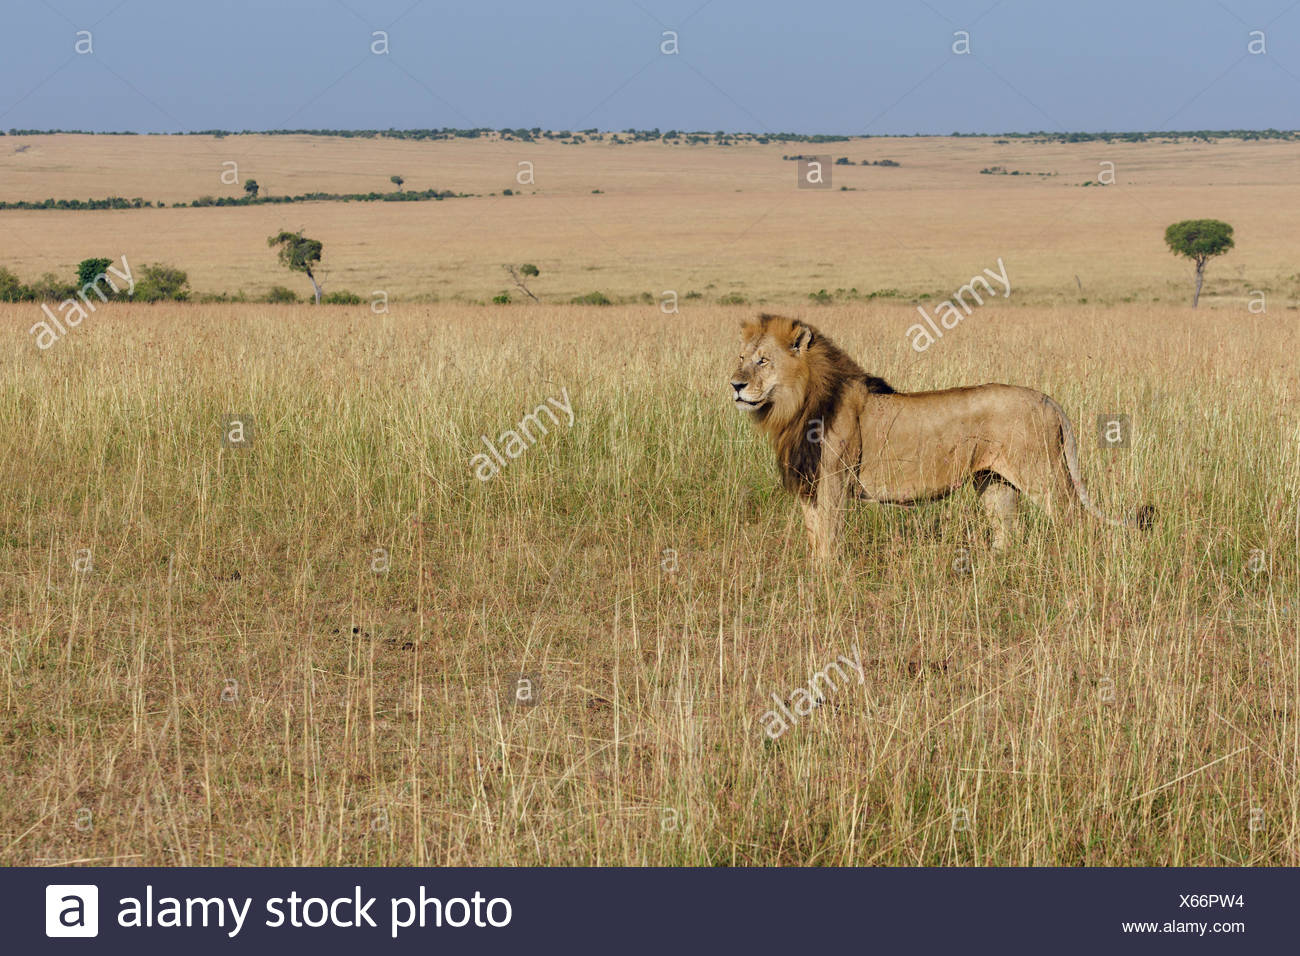 Lion (Panthera leo), male in grassland, Masai Mara, Narok County, Kenya - Stock Image